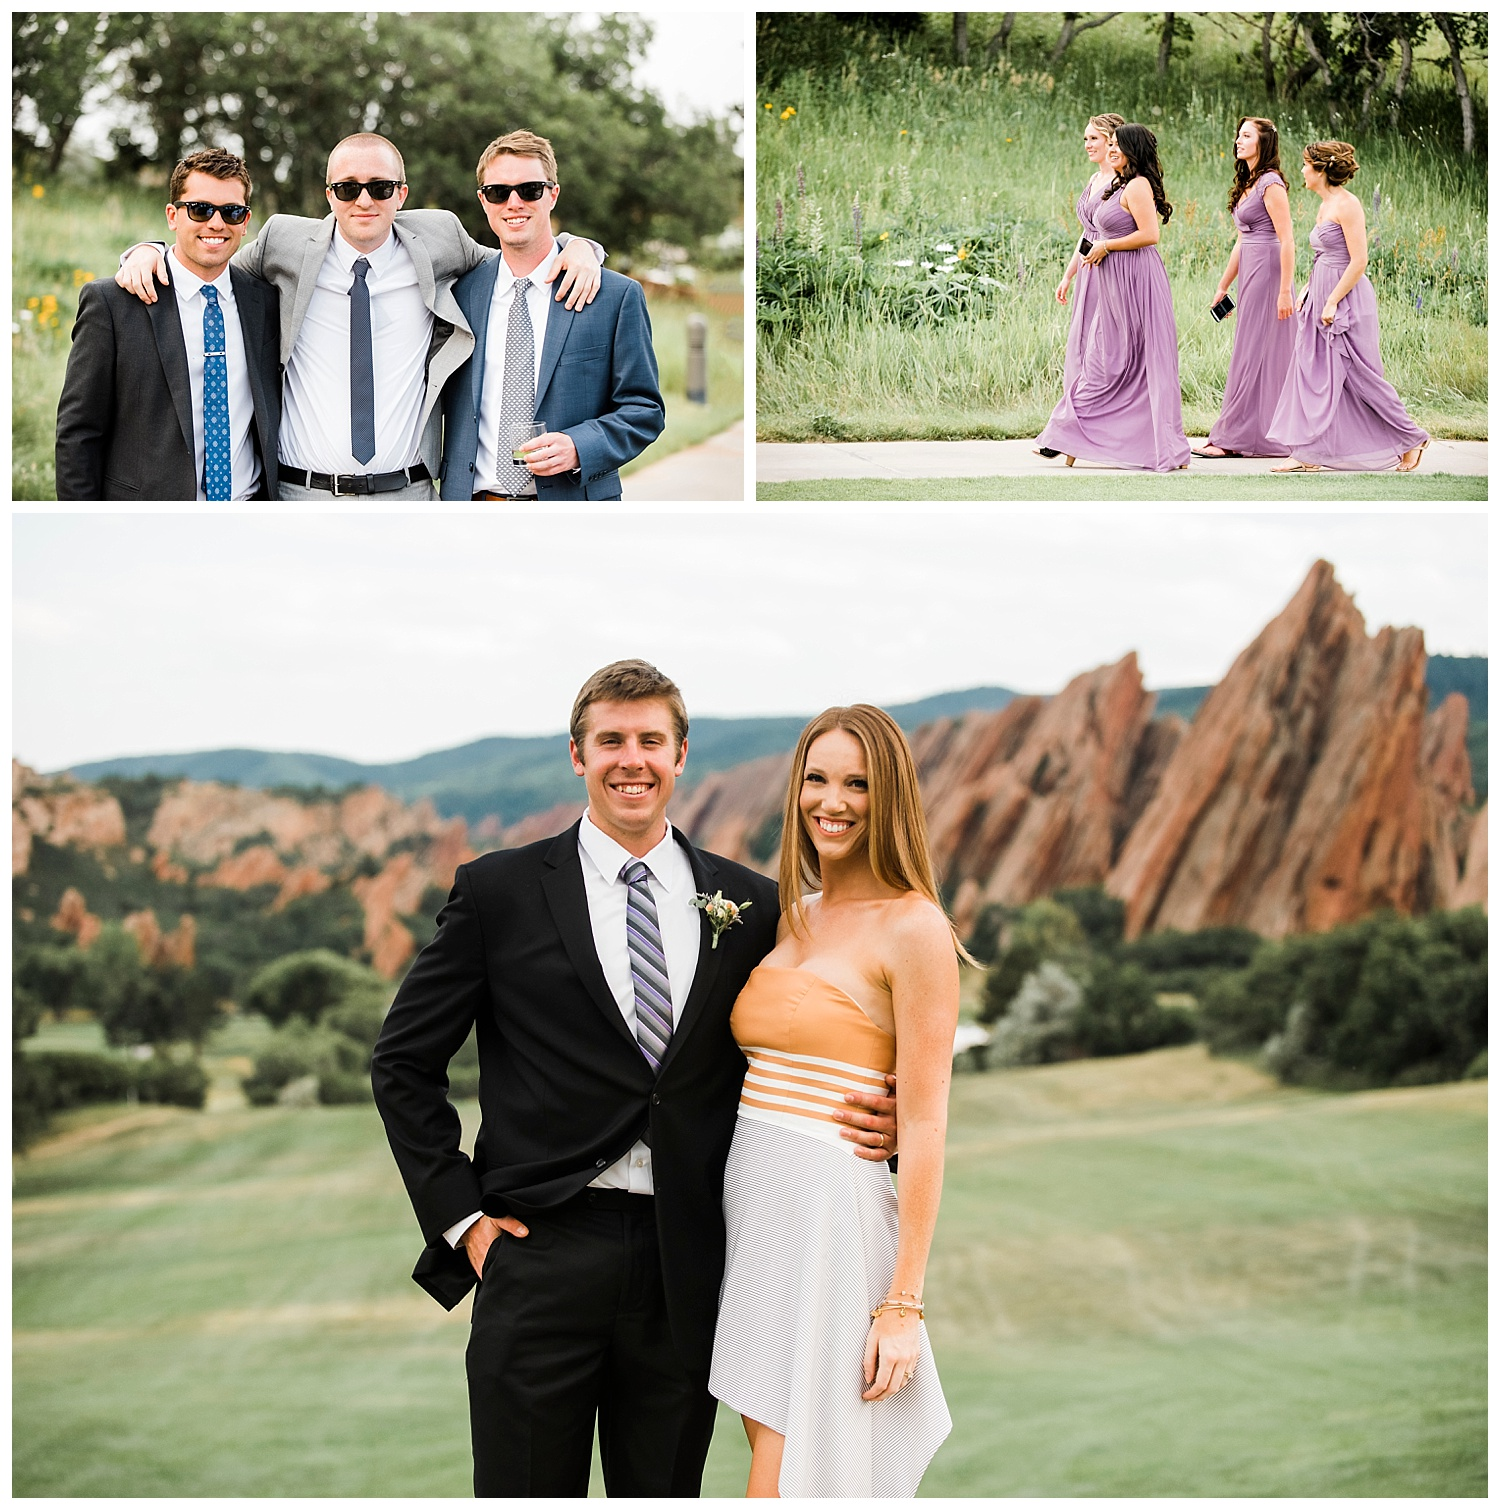 Arrowhead_Golf_Course_Wedding_Littleton_Colorado_Apollo_Fields_169.jpg